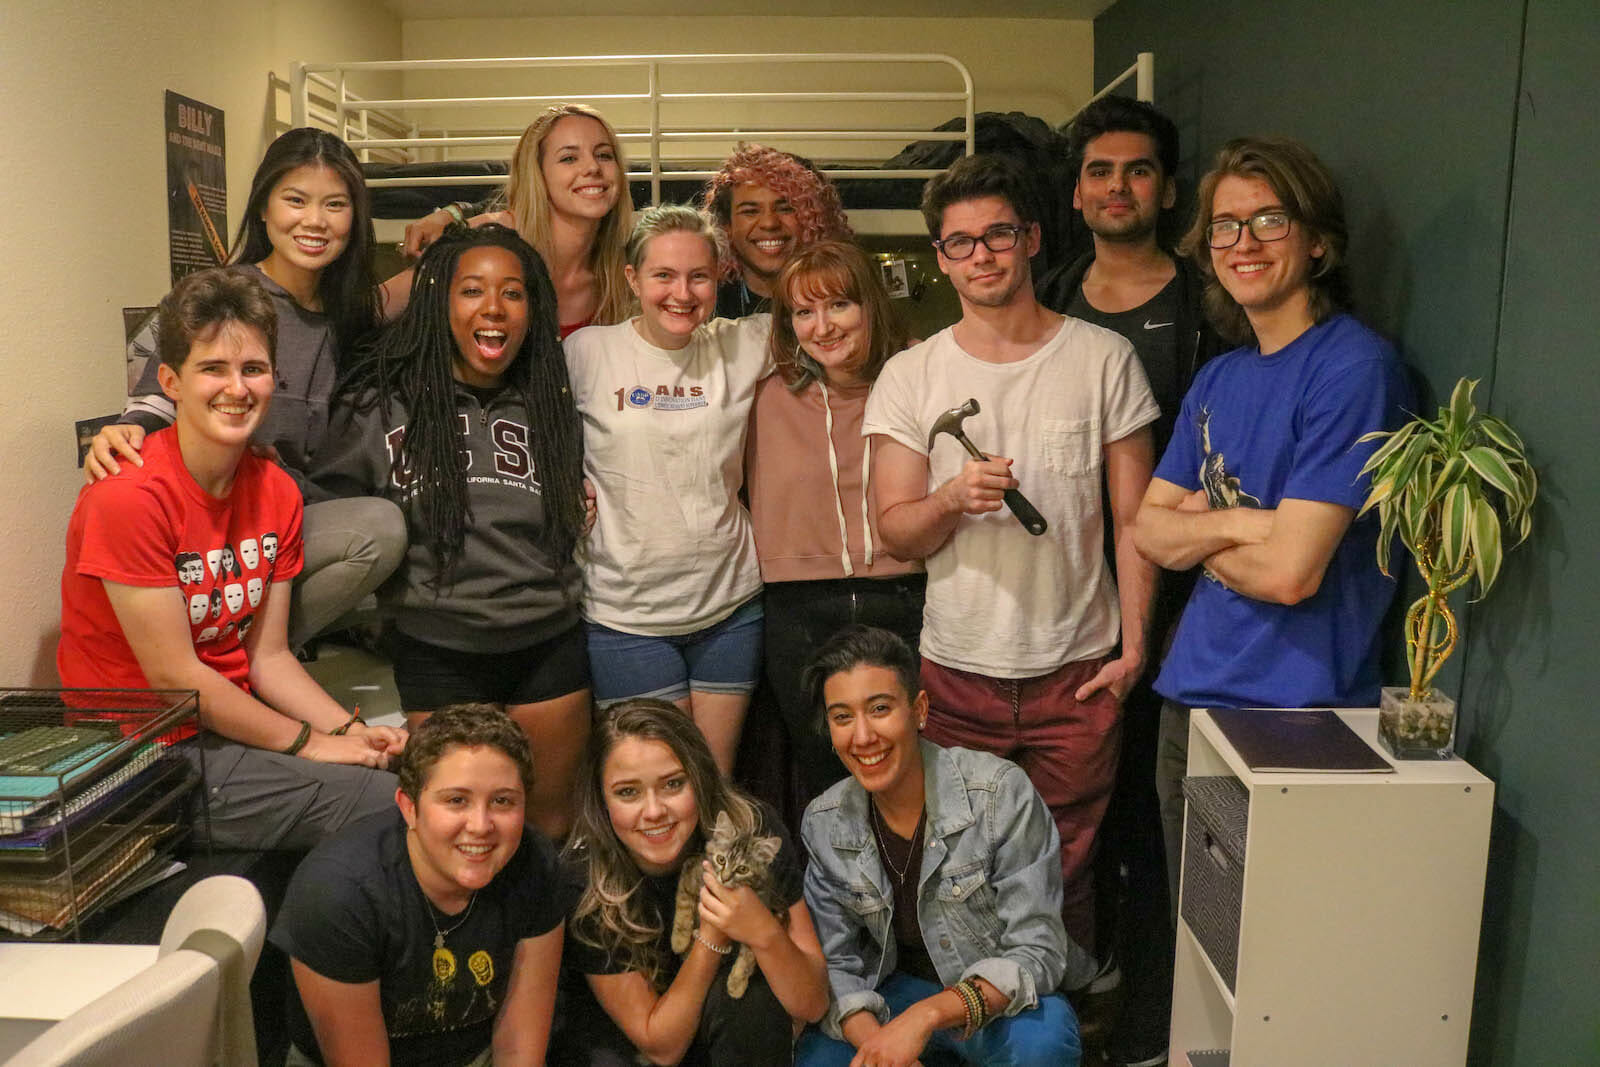 "Cast and crew photo on the last full-cast day of shooting on set. Top row from left: Ana Ming Bostwick-Singer, Meredith ""Kat"" Wells, Justice Schiappa, Arjun Sarup. Middle row from left: Ursula Collins-Laine, Joré Aaron, Christa Troester, Emma Drewry, Jay Borgwardt, Isaac Sanchez. Bottom row from left: Miriam Sachs, KatieMichal Pullen (holding a kitten named April), Victoria Ortiz. Photographed by Miriam Sachs."